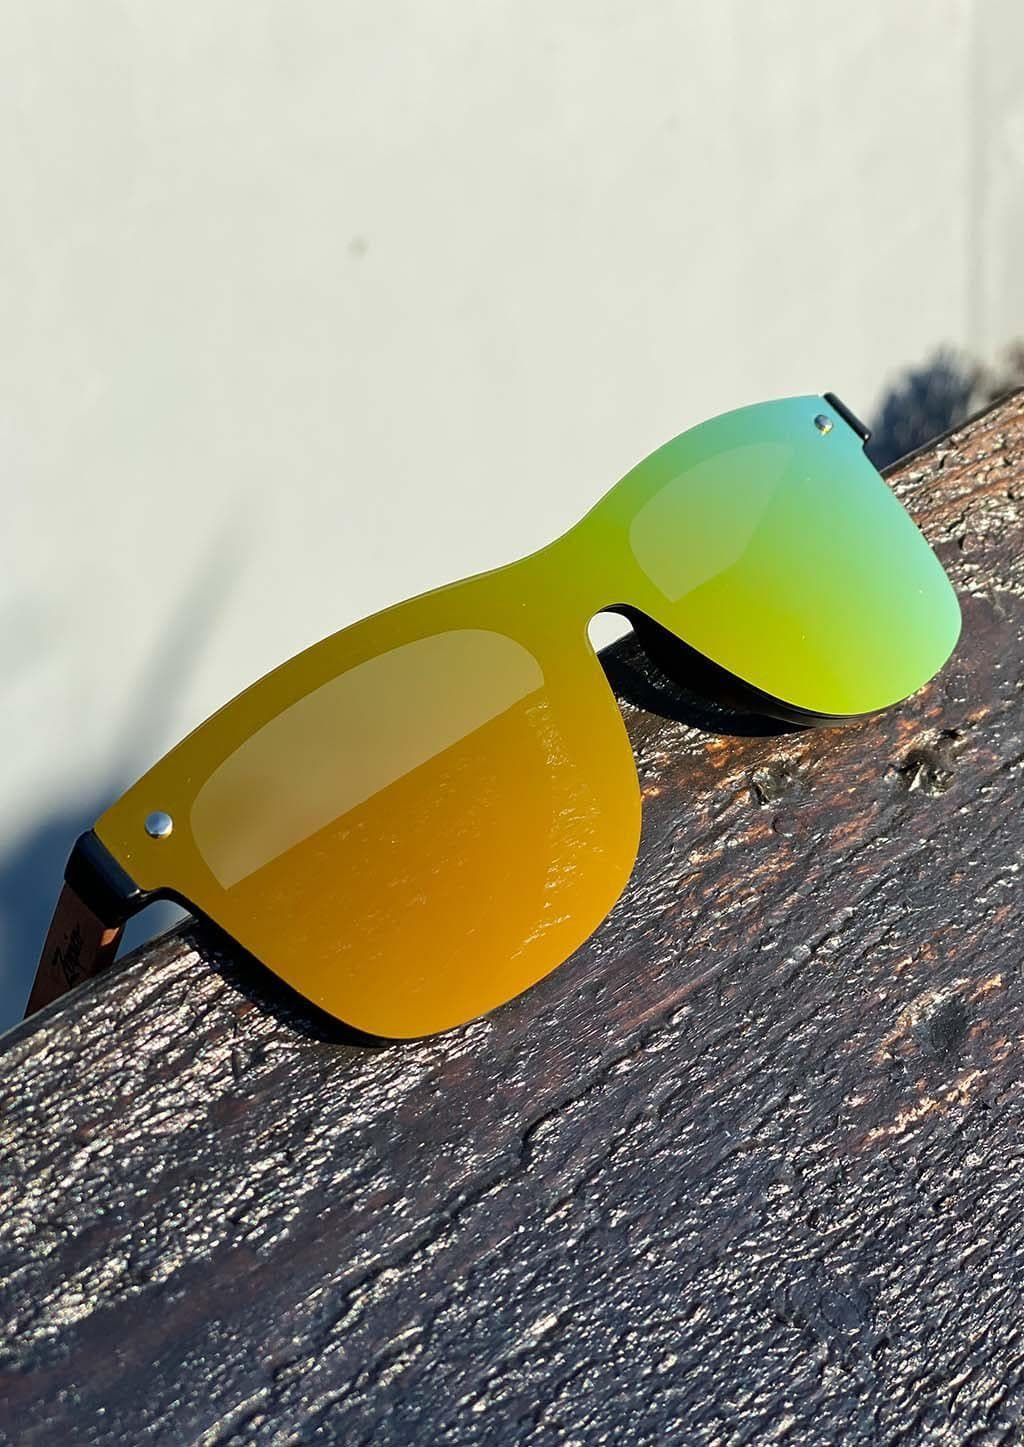 Eyewood tomorrow is our modern cool take on classic models. This is Scorpius with yellow mirror lenses. Nice wooden sunglasses outside in the sun.